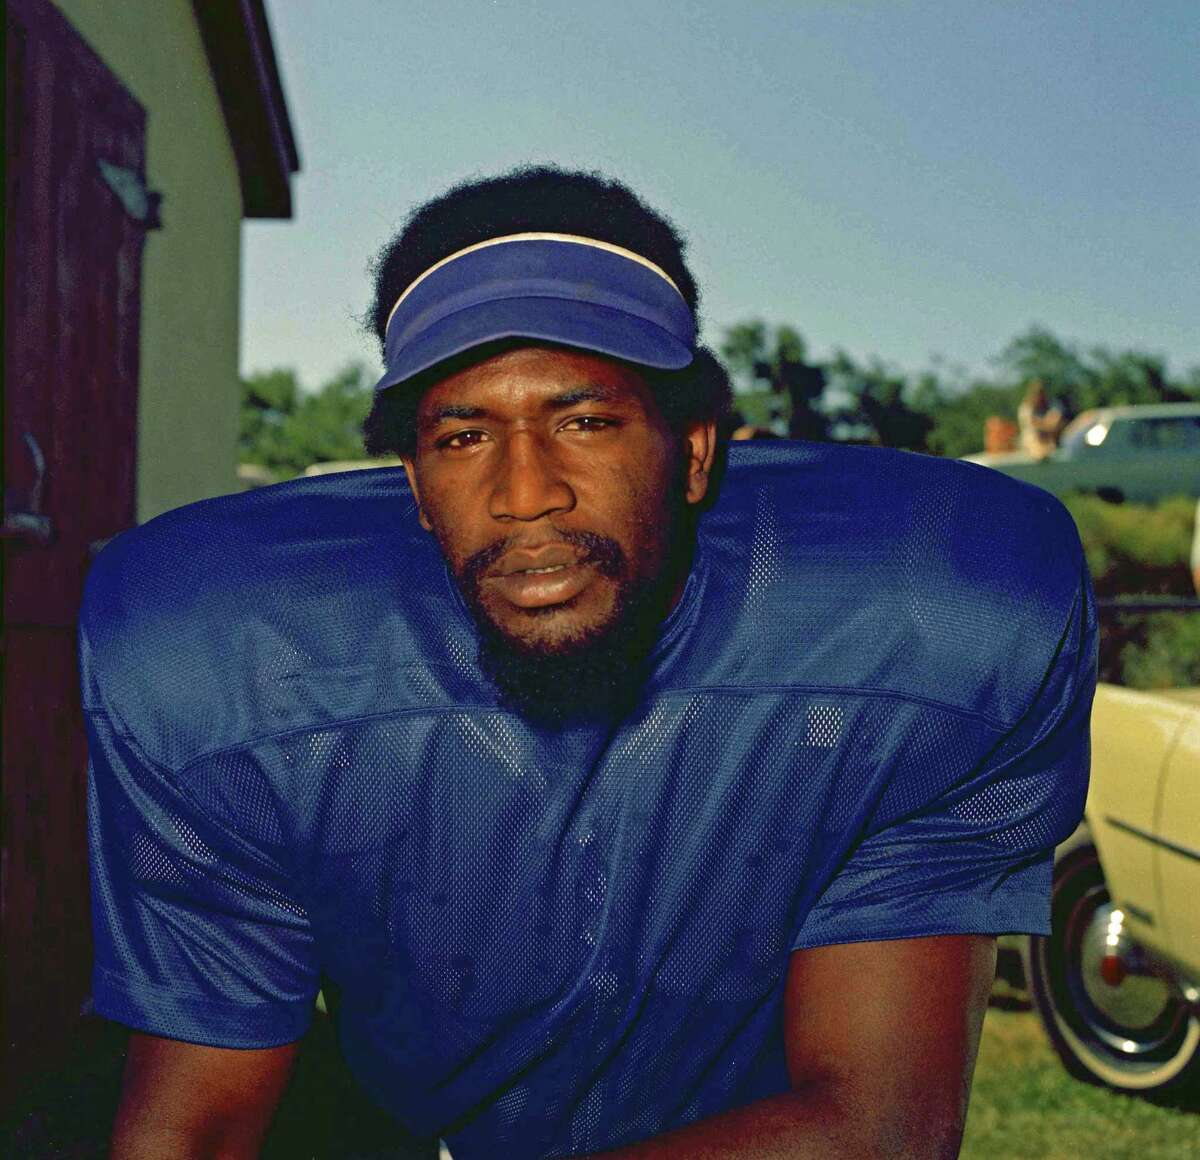 Bubba Smith The late Baltimore Colts defensive end Bubba Smith was diagnosed with the brain disease CTE by researchers after his death.